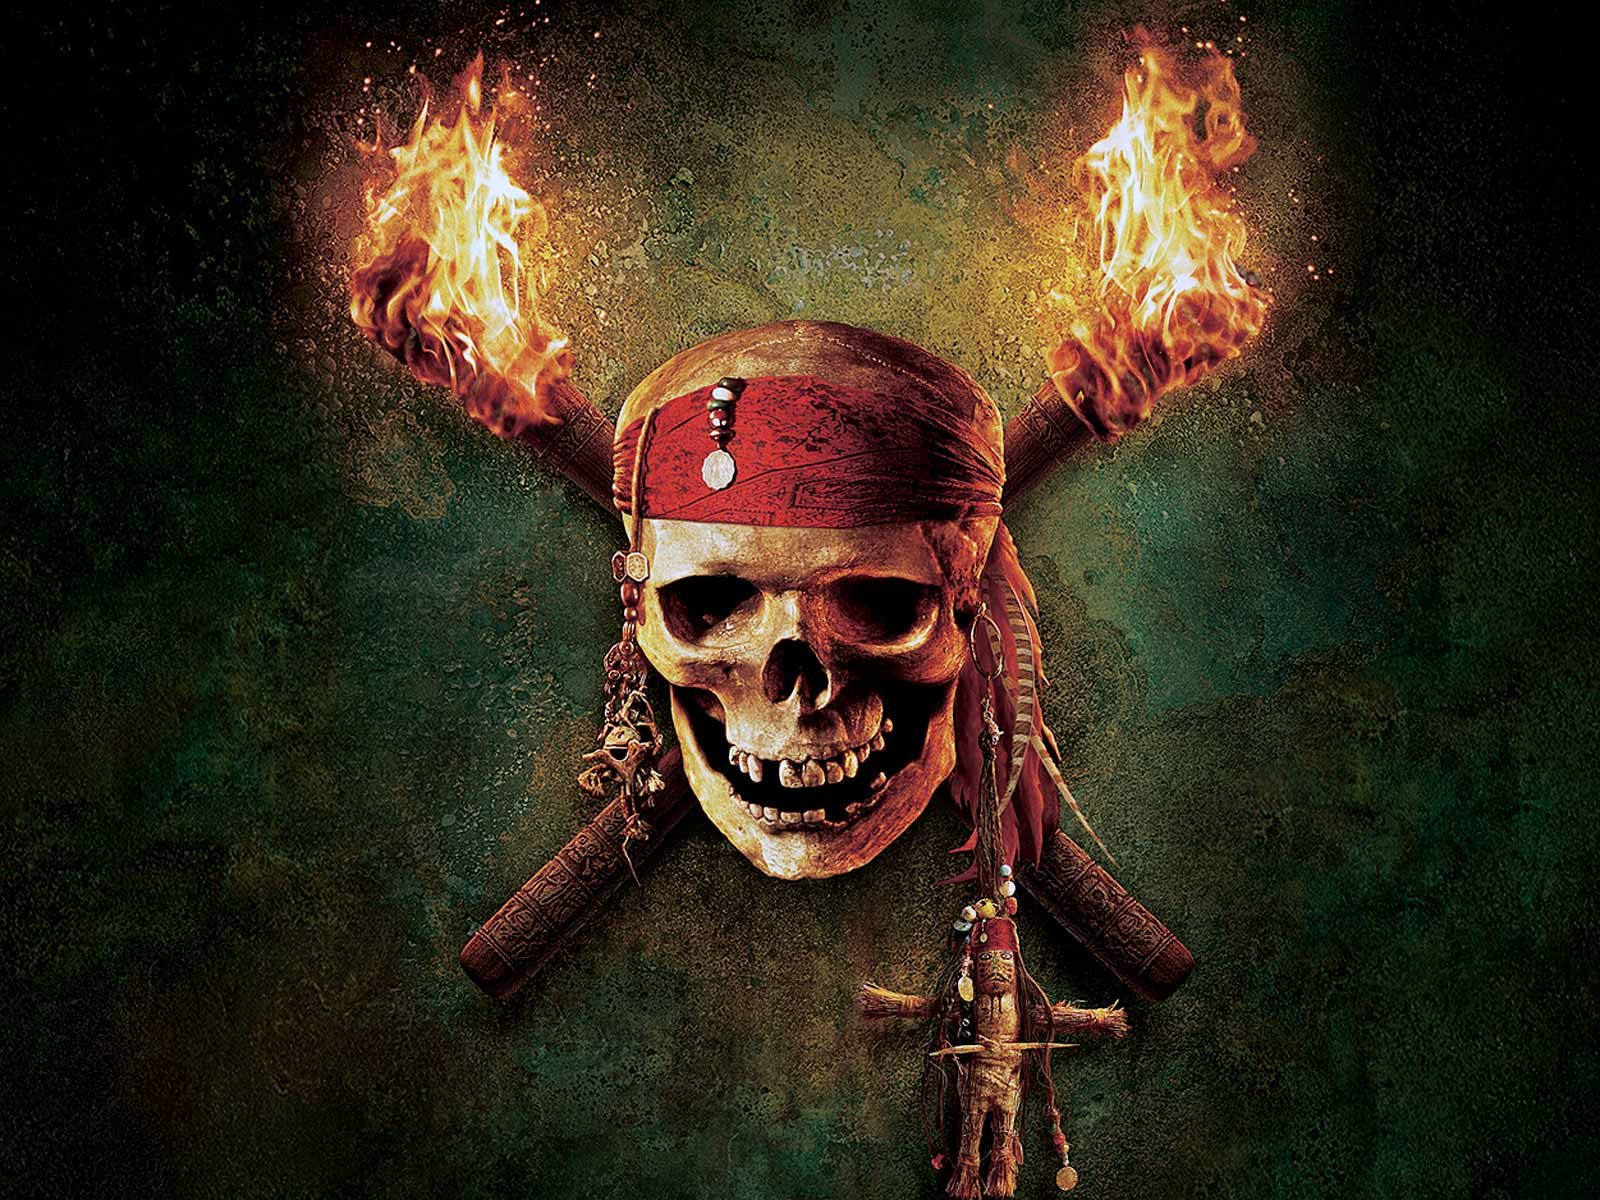 http://4.bp.blogspot.com/-8TsUvGvWKvM/UNqPry-PRQI/AAAAAAAAB58/Fi1P4UlXOjo/s1600/1287546157_1600x1200_pirates-of-the-caribbean-wallpaper.jpg